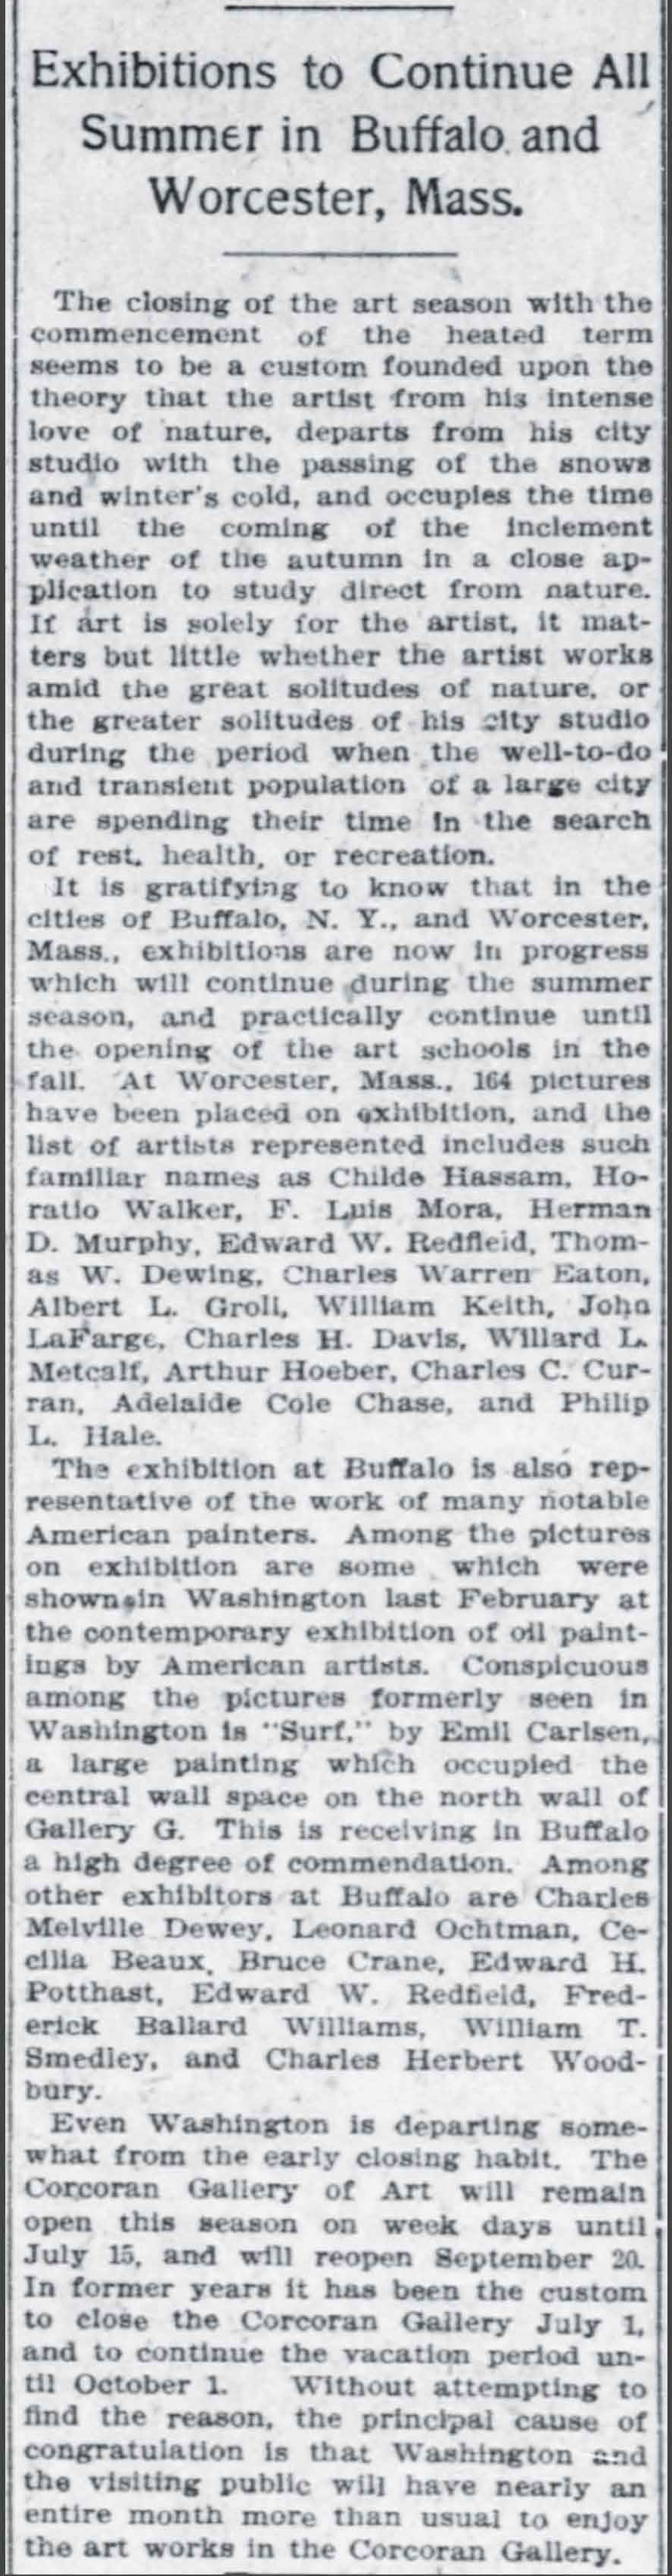 """The Washington Times, Washington, DC, """"Exhibitions to Continue All Summer in Buffalo and Worcester, Mass"""", June 30, 1907, First Edition"""